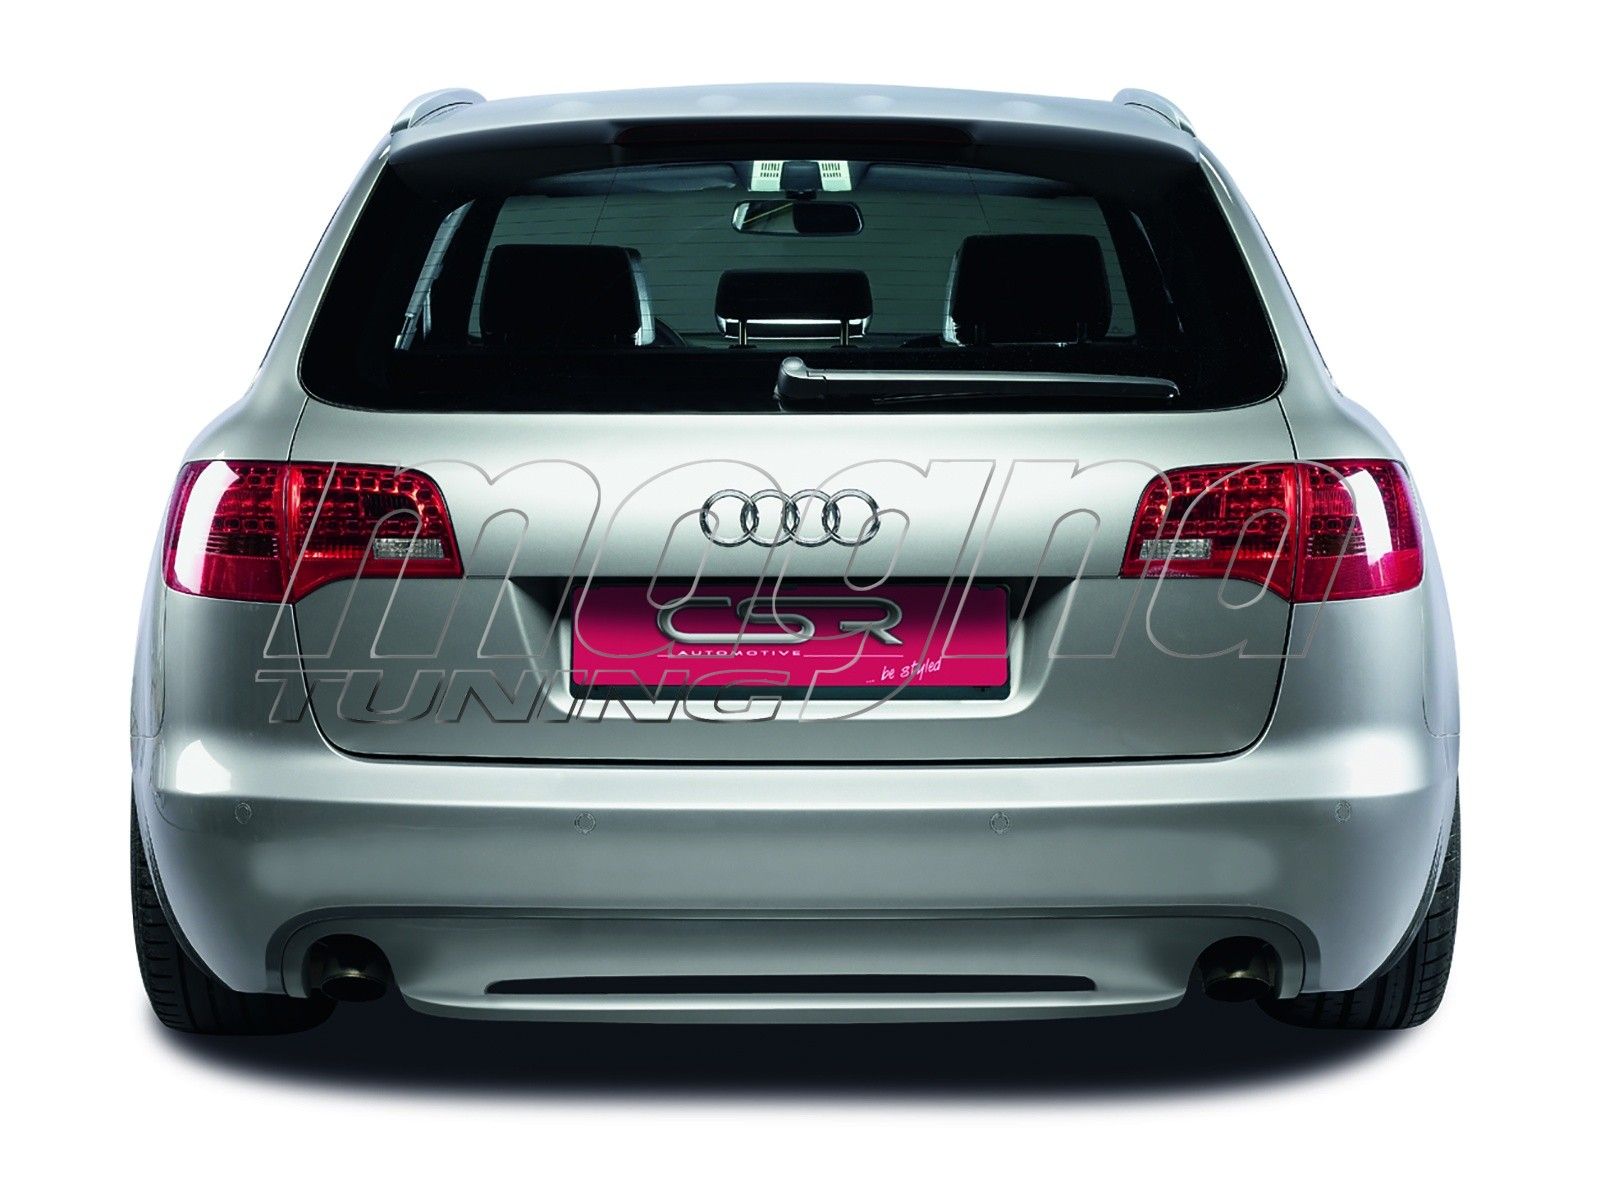 audi a6 c6 4f avant xl line rear bumper extension. Black Bedroom Furniture Sets. Home Design Ideas